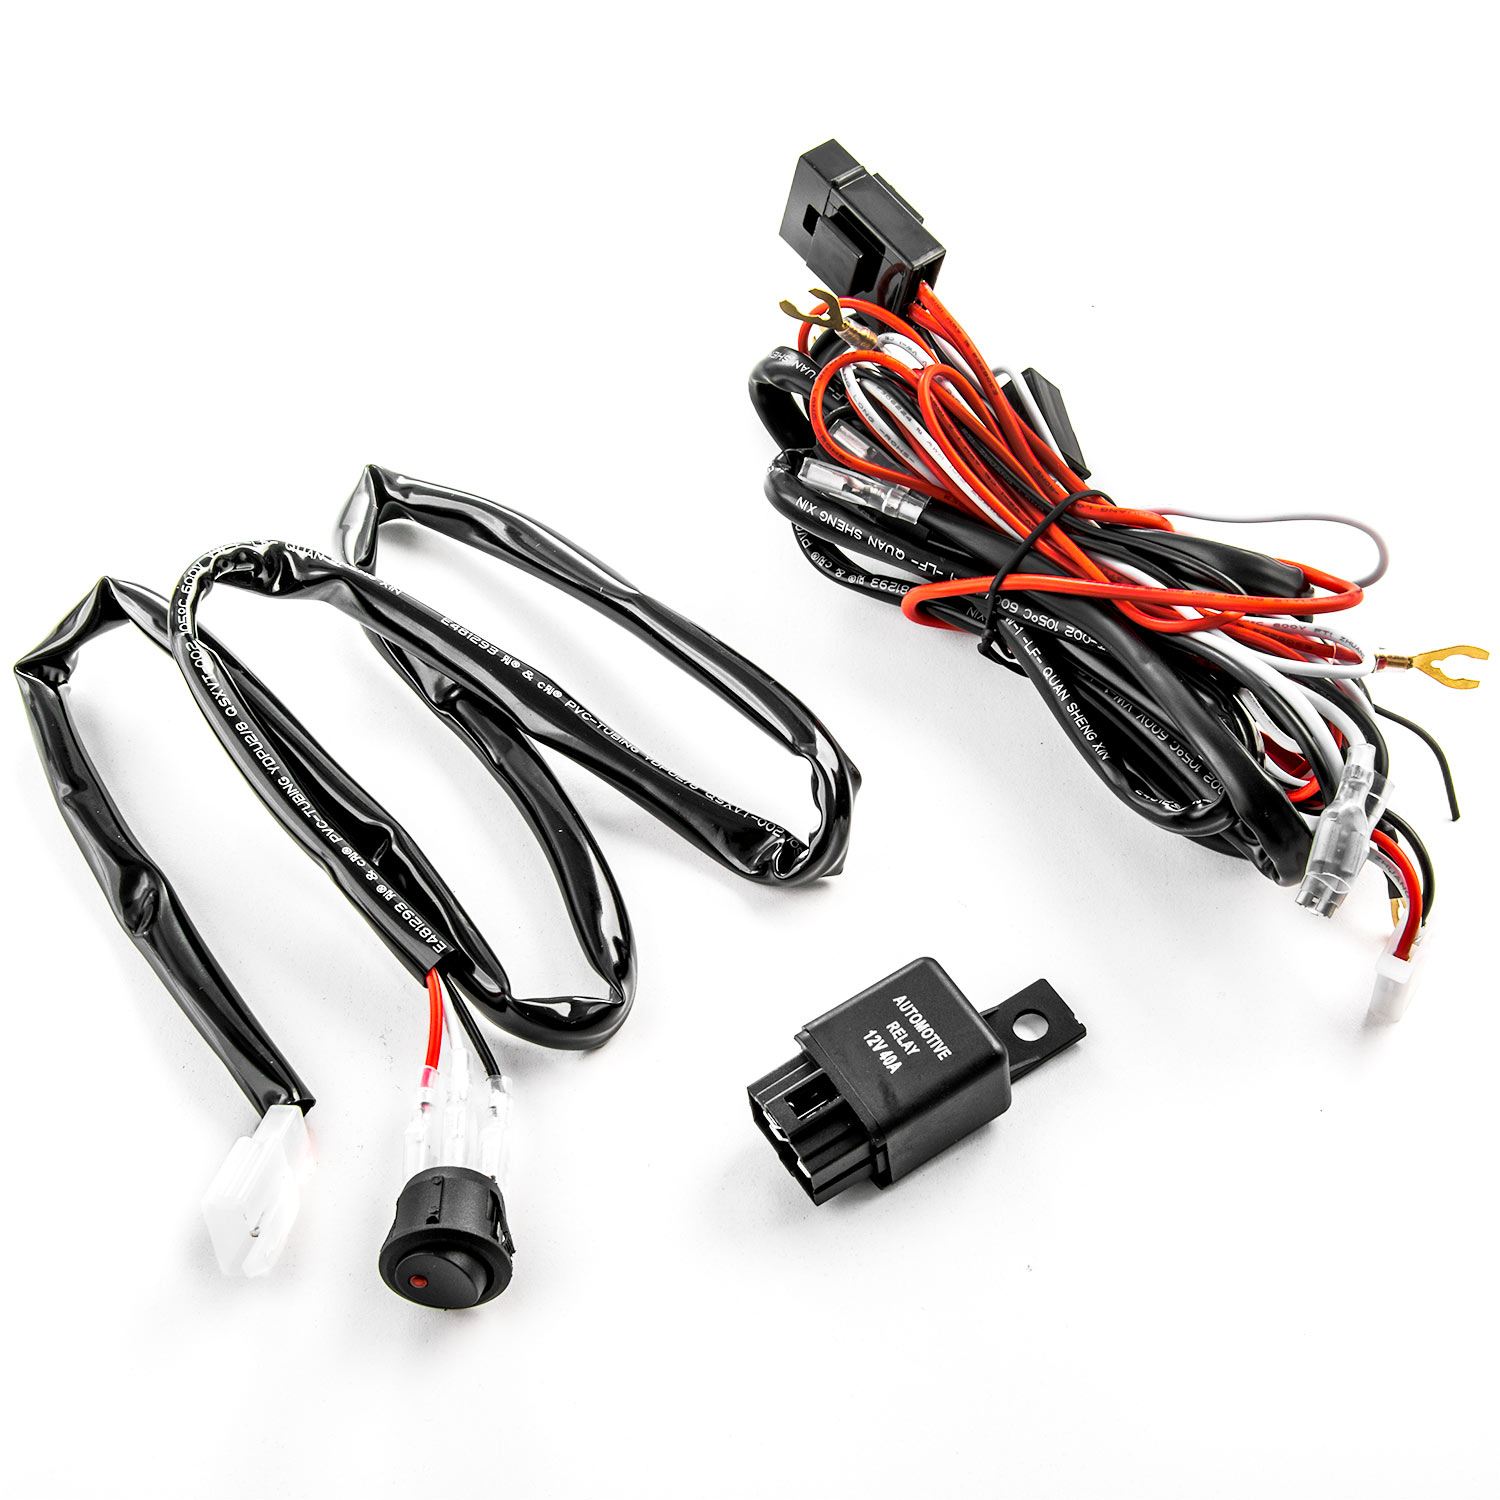 Accessories Wk003 Wiring Kit With Chrome Aluminum Fog Light Switch